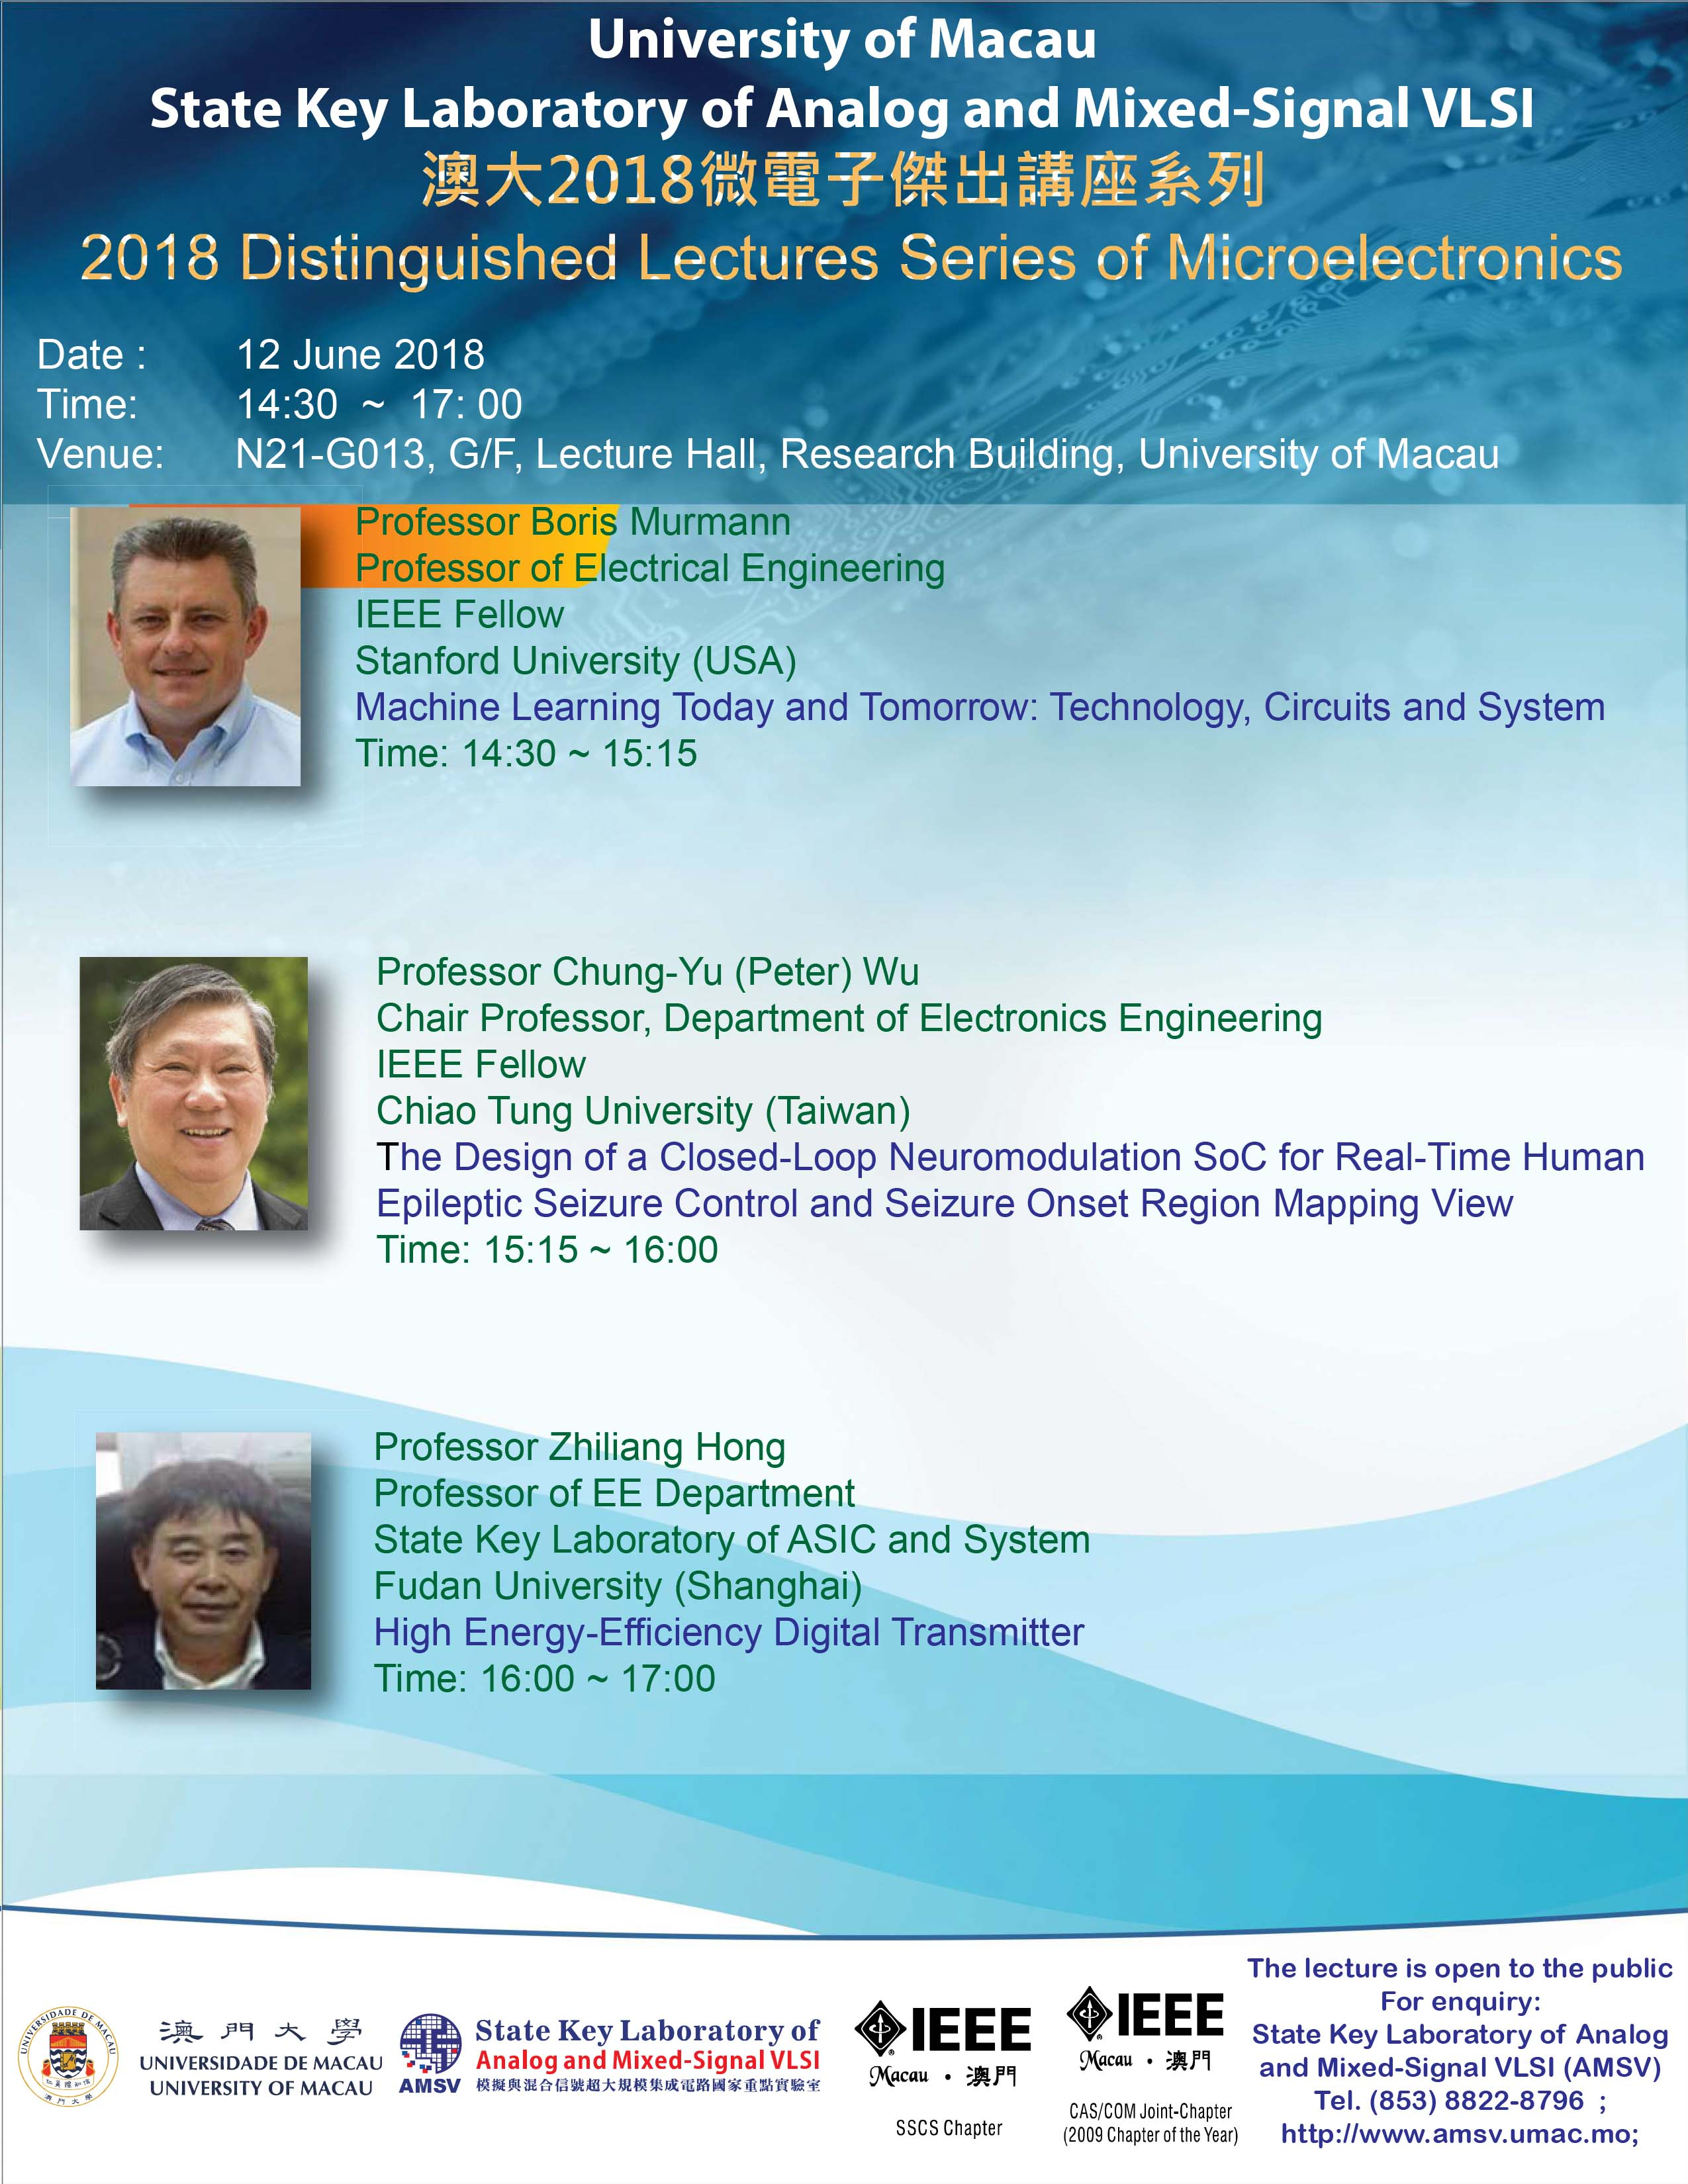 UM will hold three distinguished lectures on microelectronics next Tuesday.